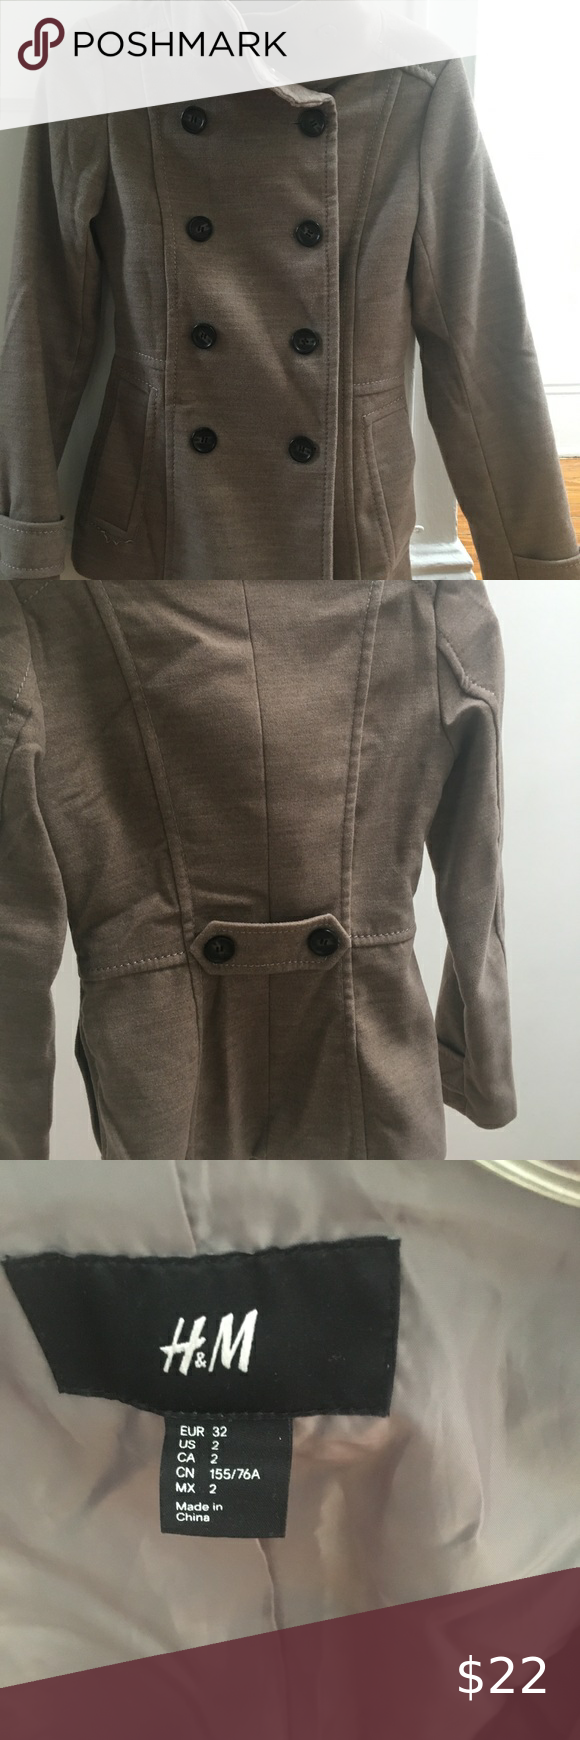 Tan/Sand Colored Trench/ Pea Coat in US 2/ EUR 32